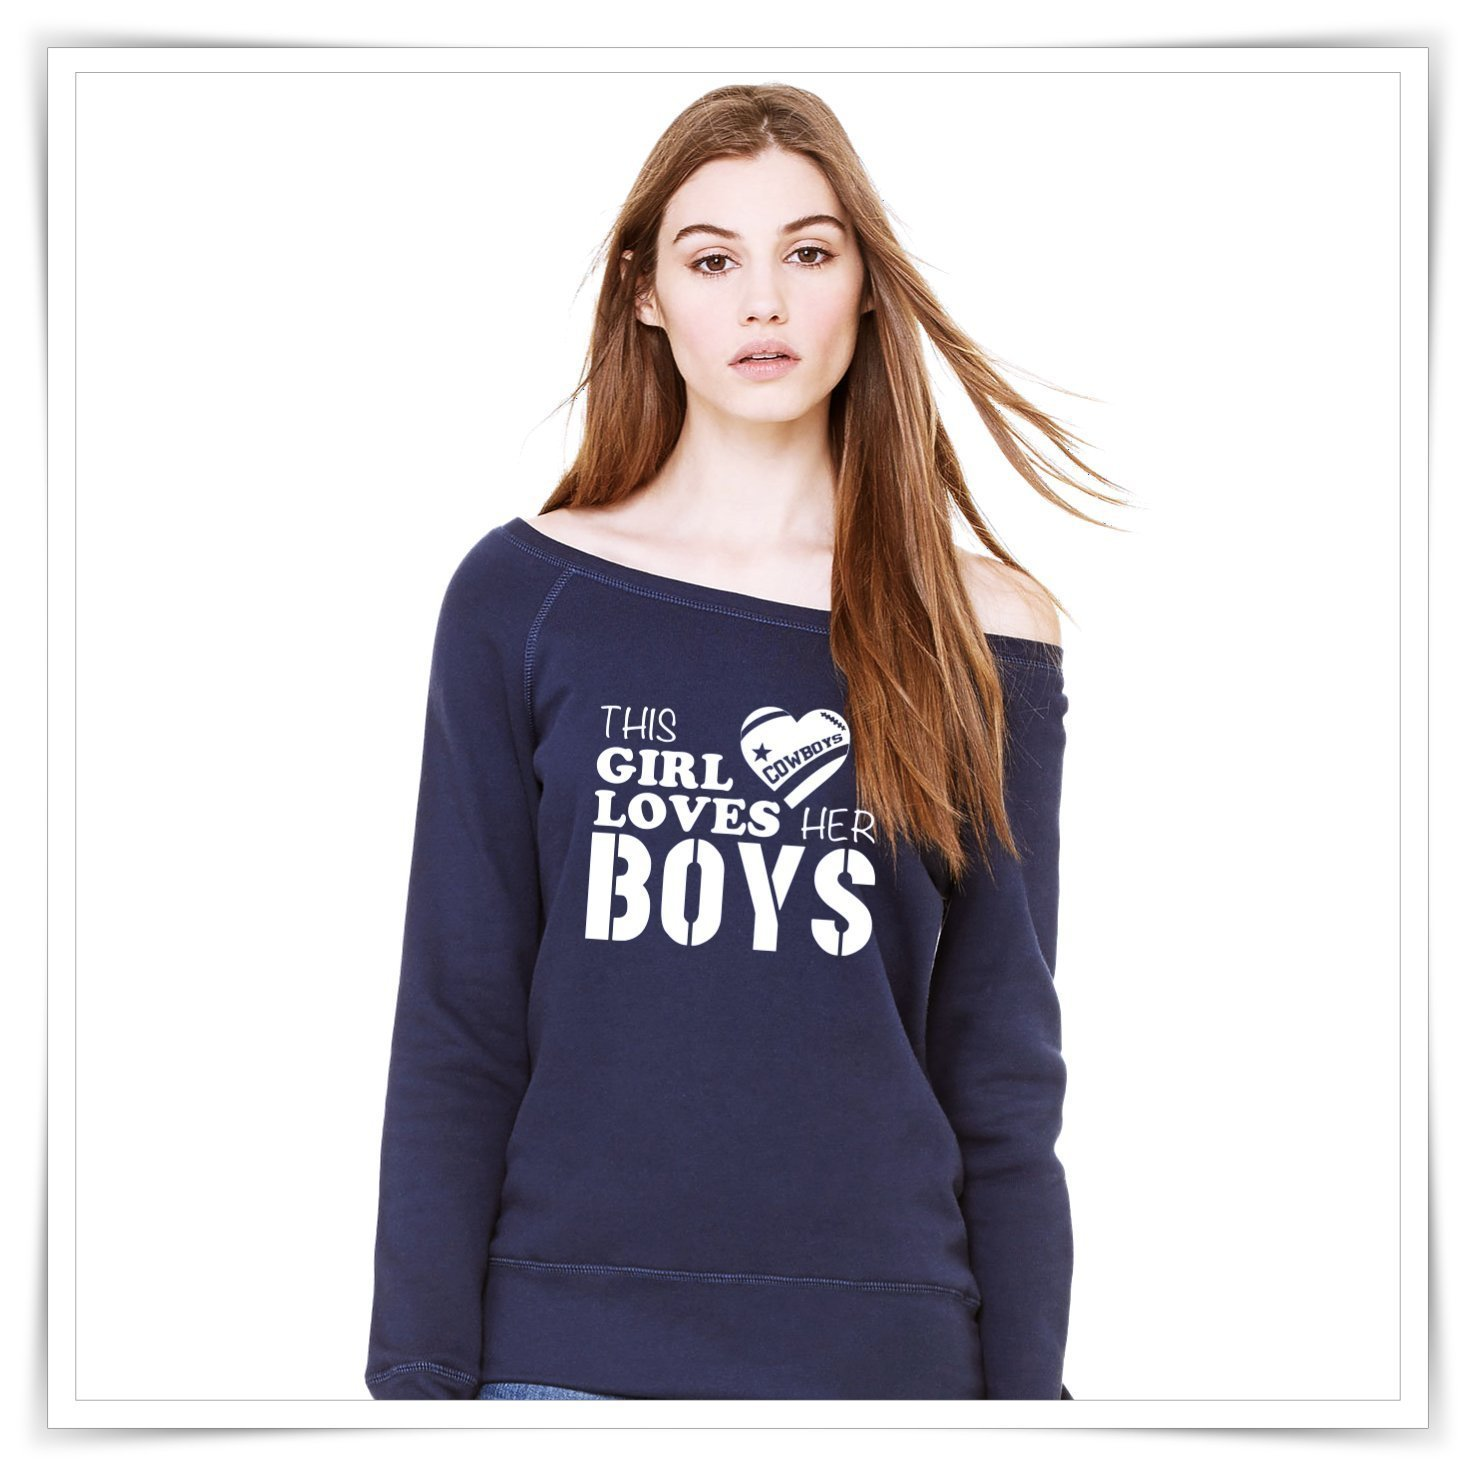 This Girl Loves Her Boys. Dallas Cowboys Inspired Sweatshirt.